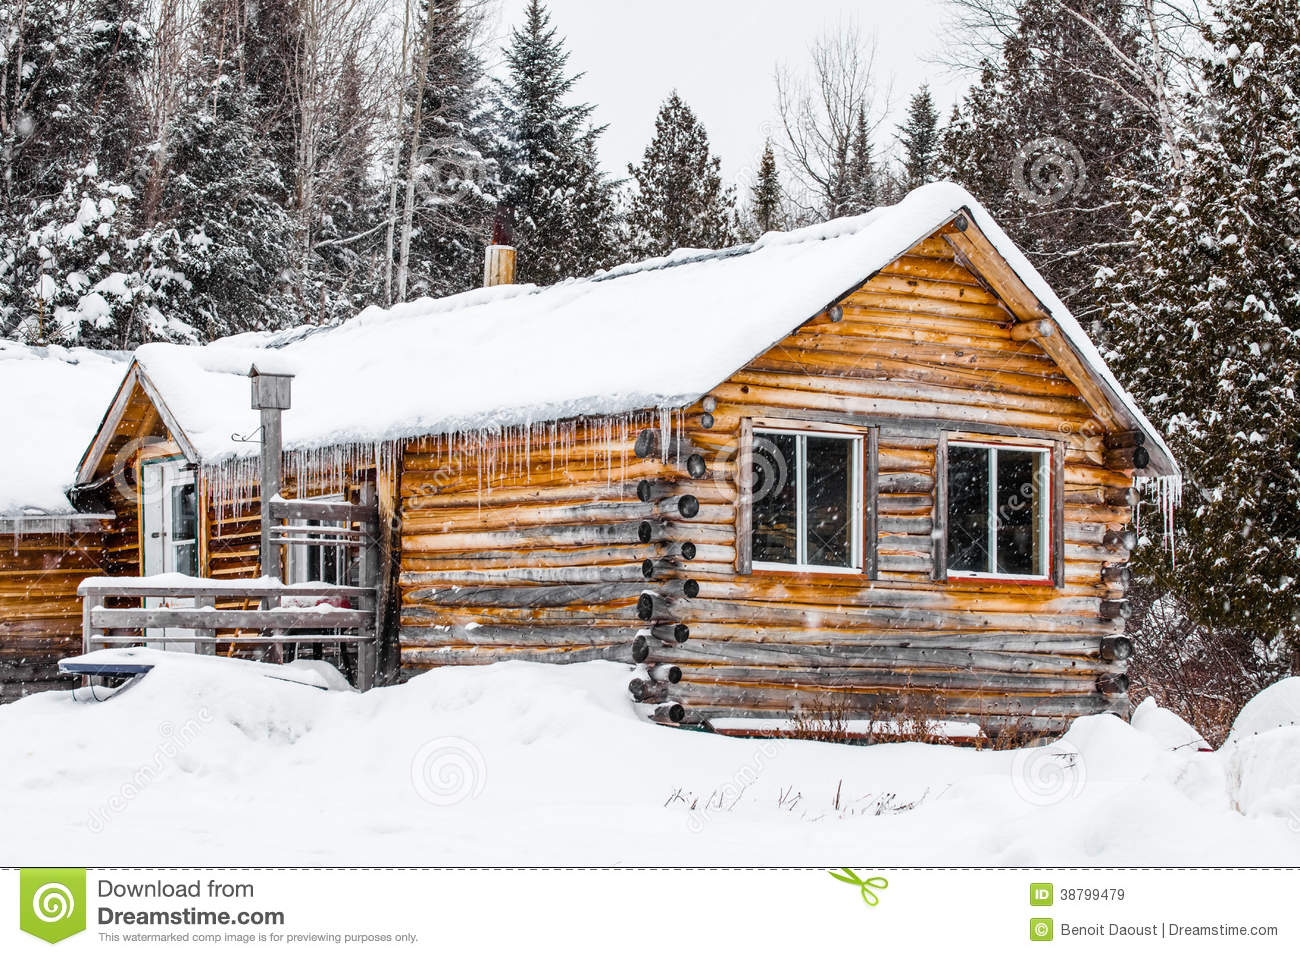 Chalet en bois de rondin au qu bec canada photo stock image 38799479 for Photo de maison au canada